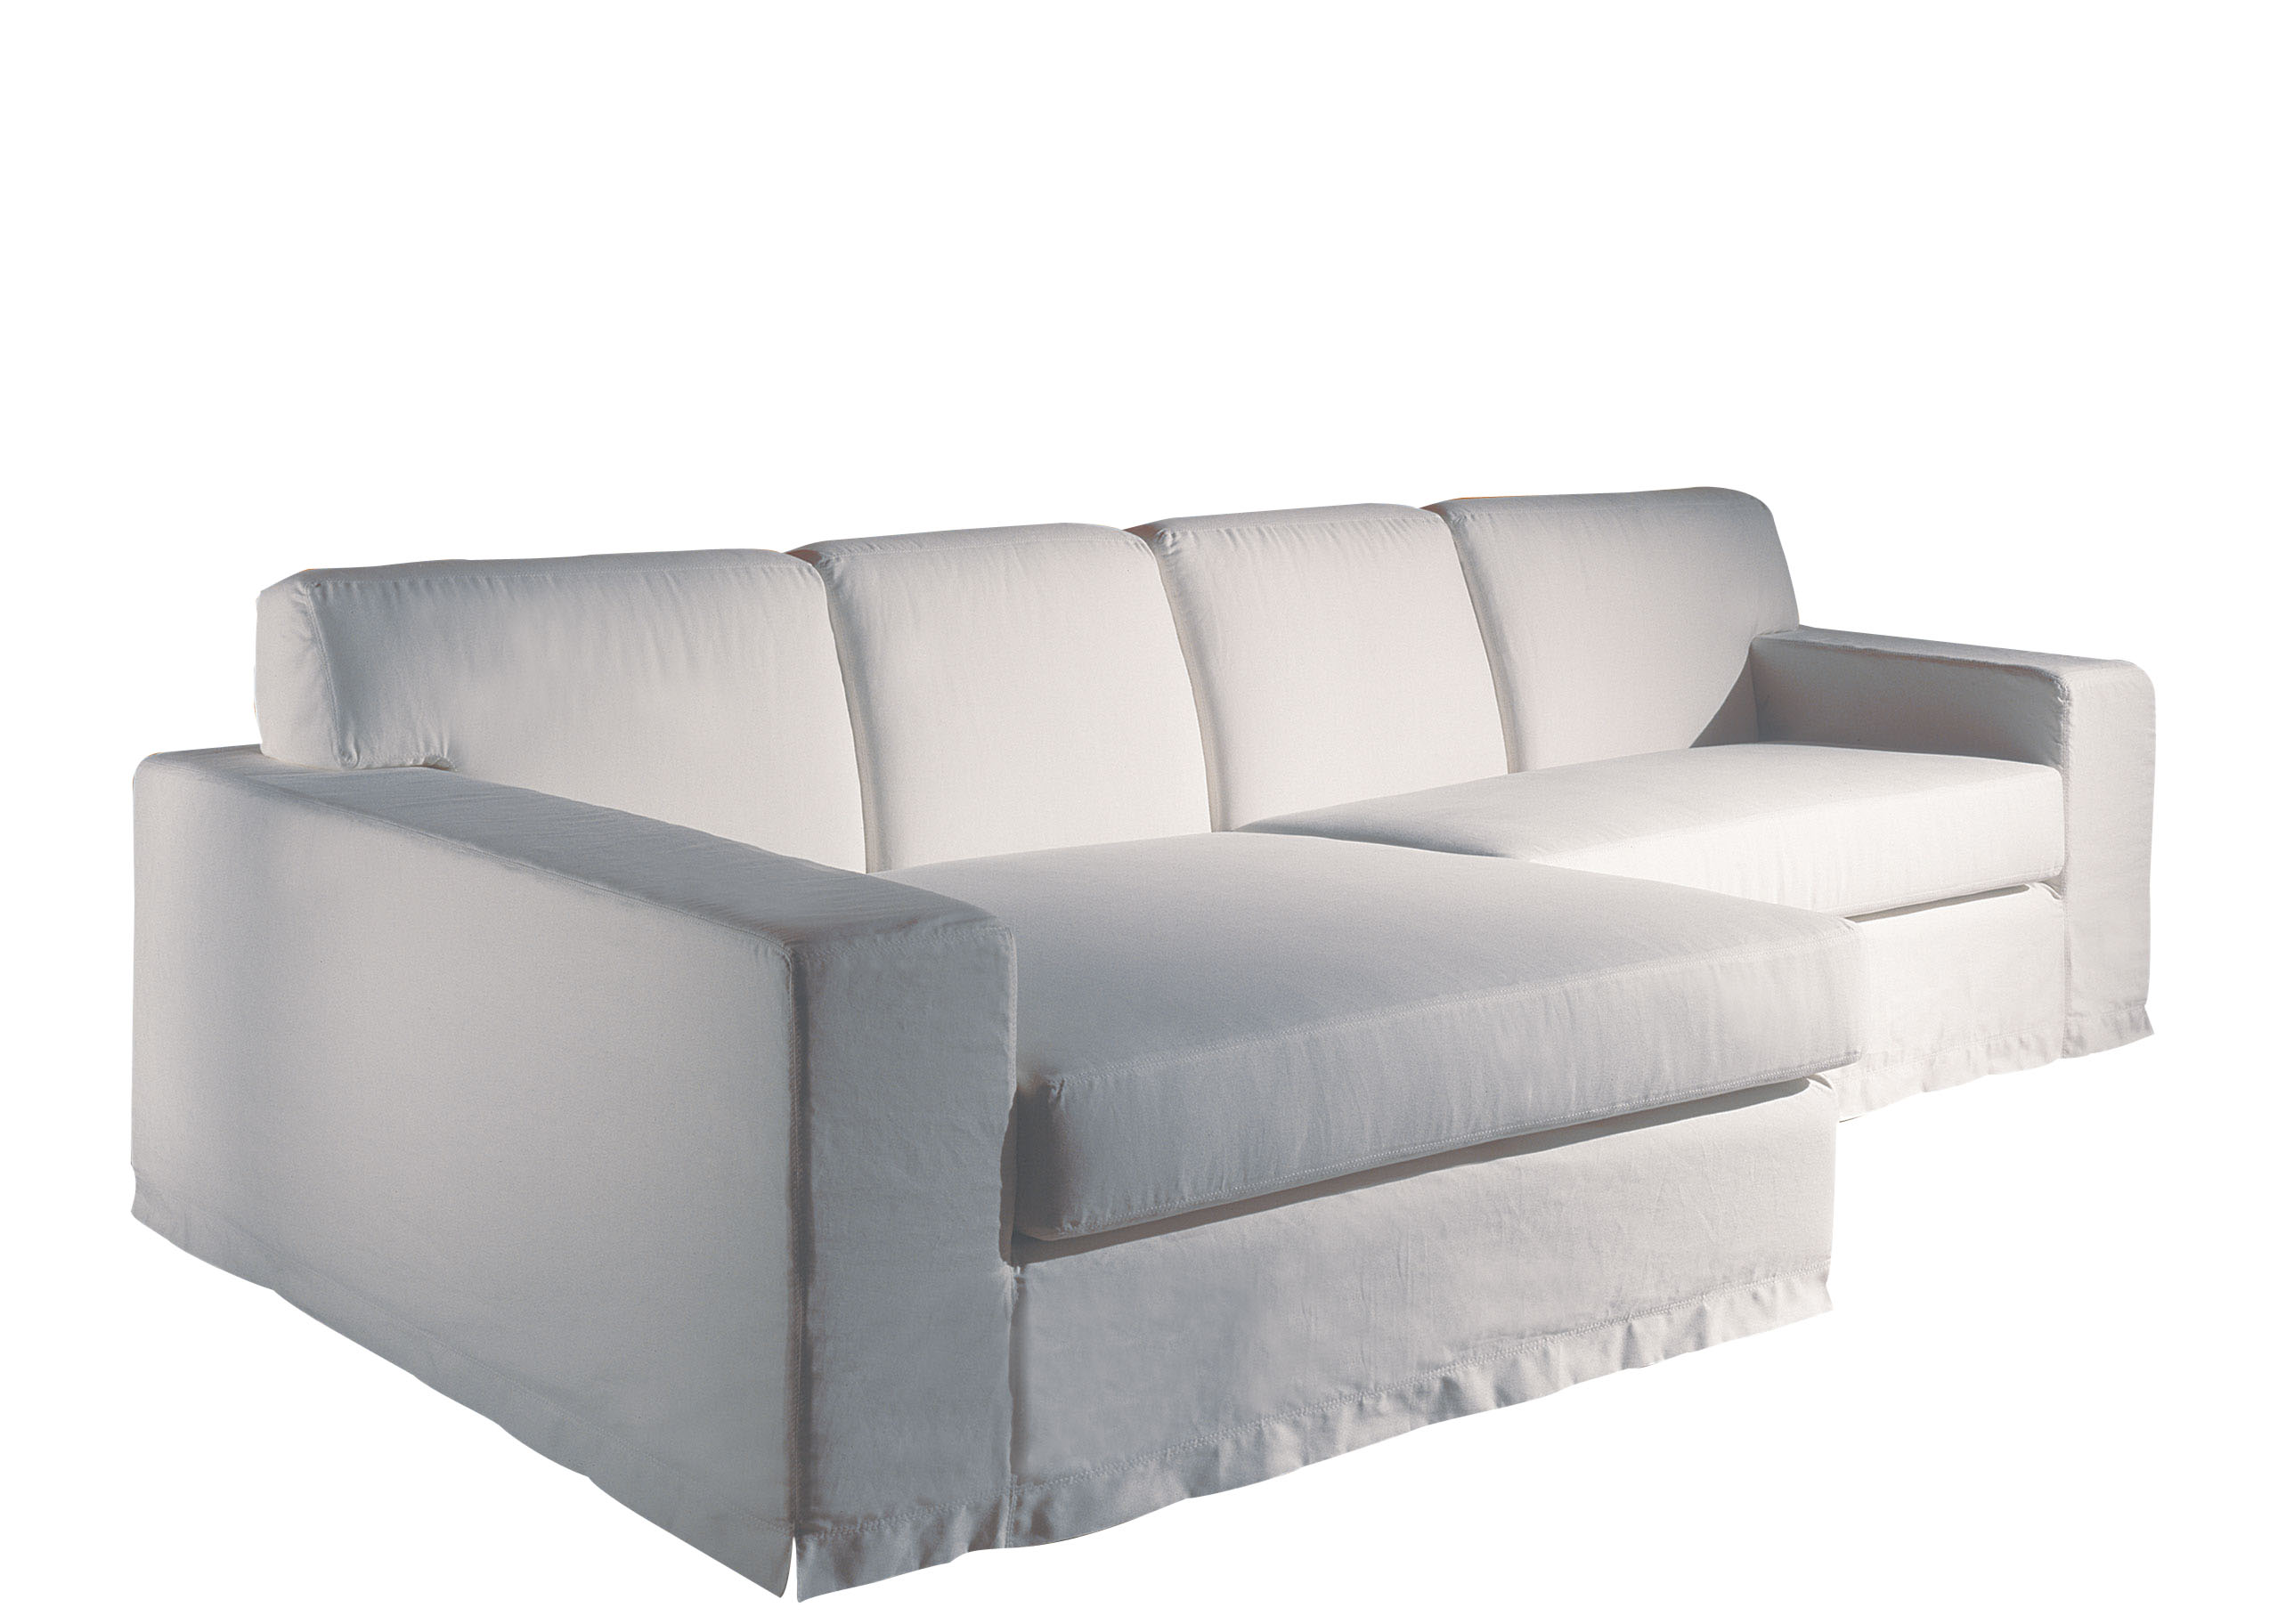 Lumens SO 4024 Chaise